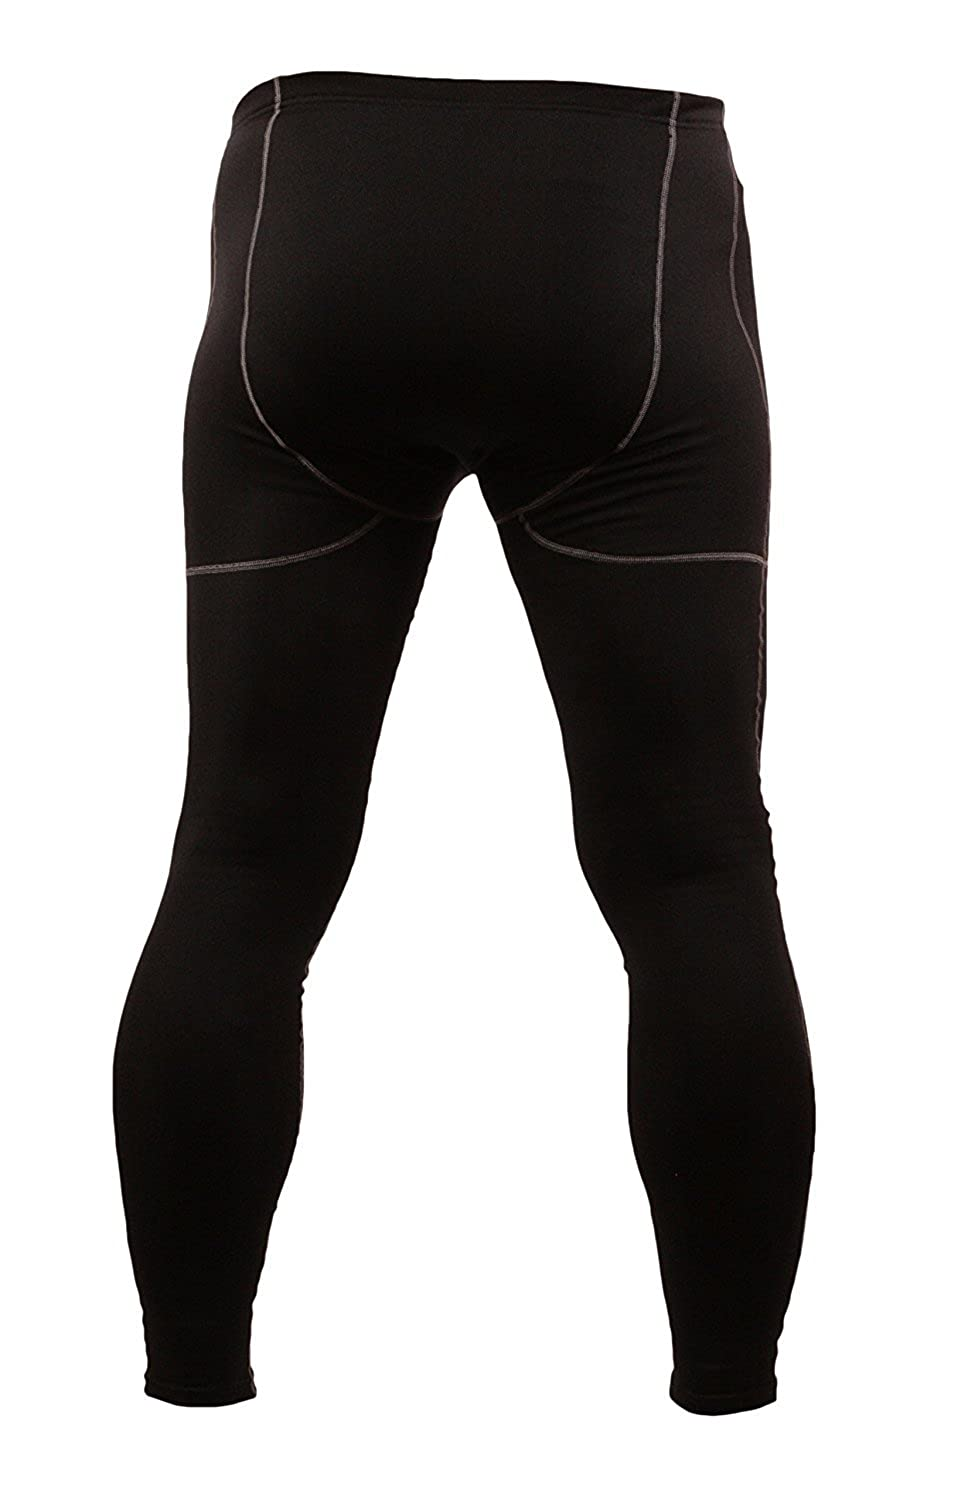 detailing new lifestyle how to find Men's Thermal Under Armour Compression Cycling Base Layer ...